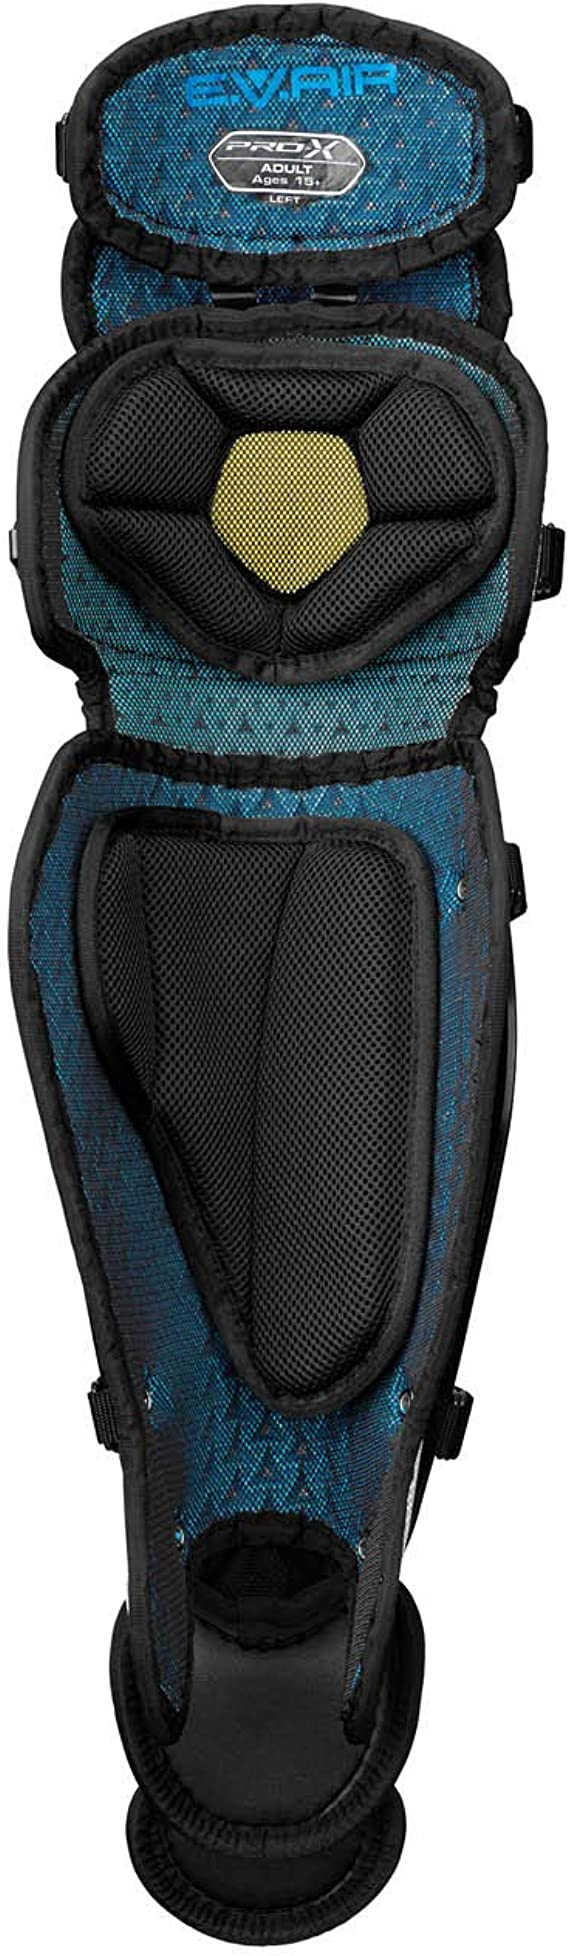 EVAIR Foam for Ultimate Protection /& Breathability Thigh Straps Provides Ultimate Fit /& Mobility EASTON PRO X Baseball Catchers Leg Guards 2020 Reinforced Knee Vented Shell Poron XRD